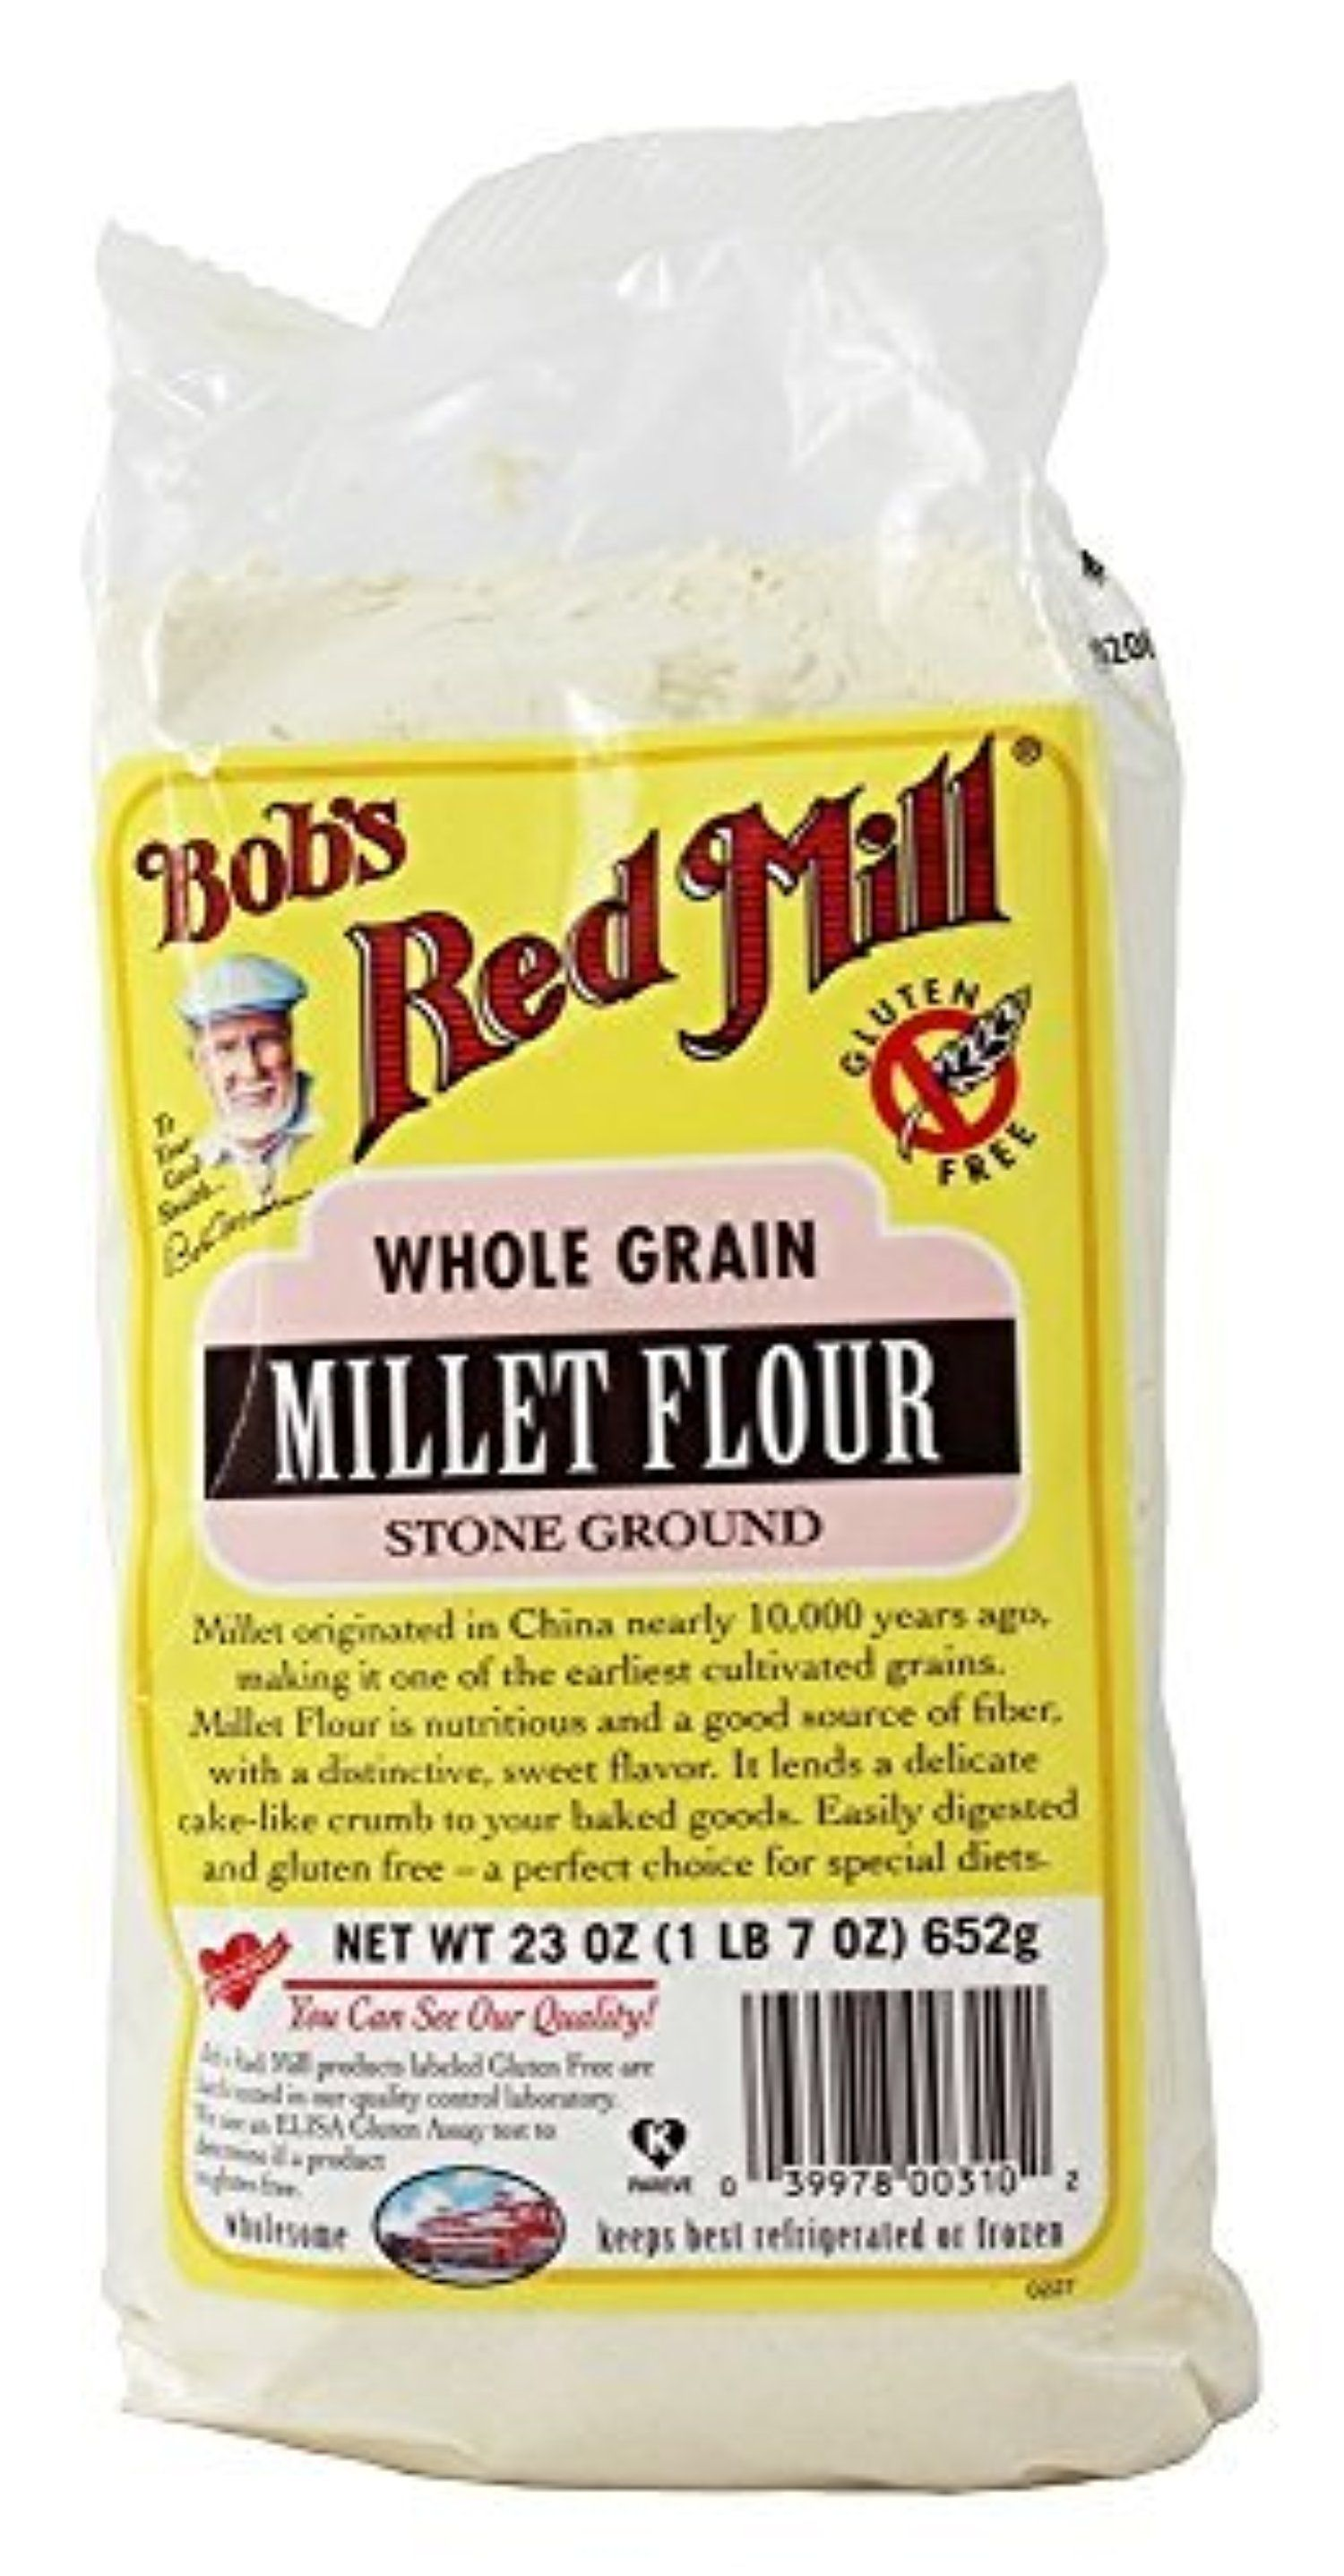 Bobs red mill gluten free millet flour 23 oz pack of